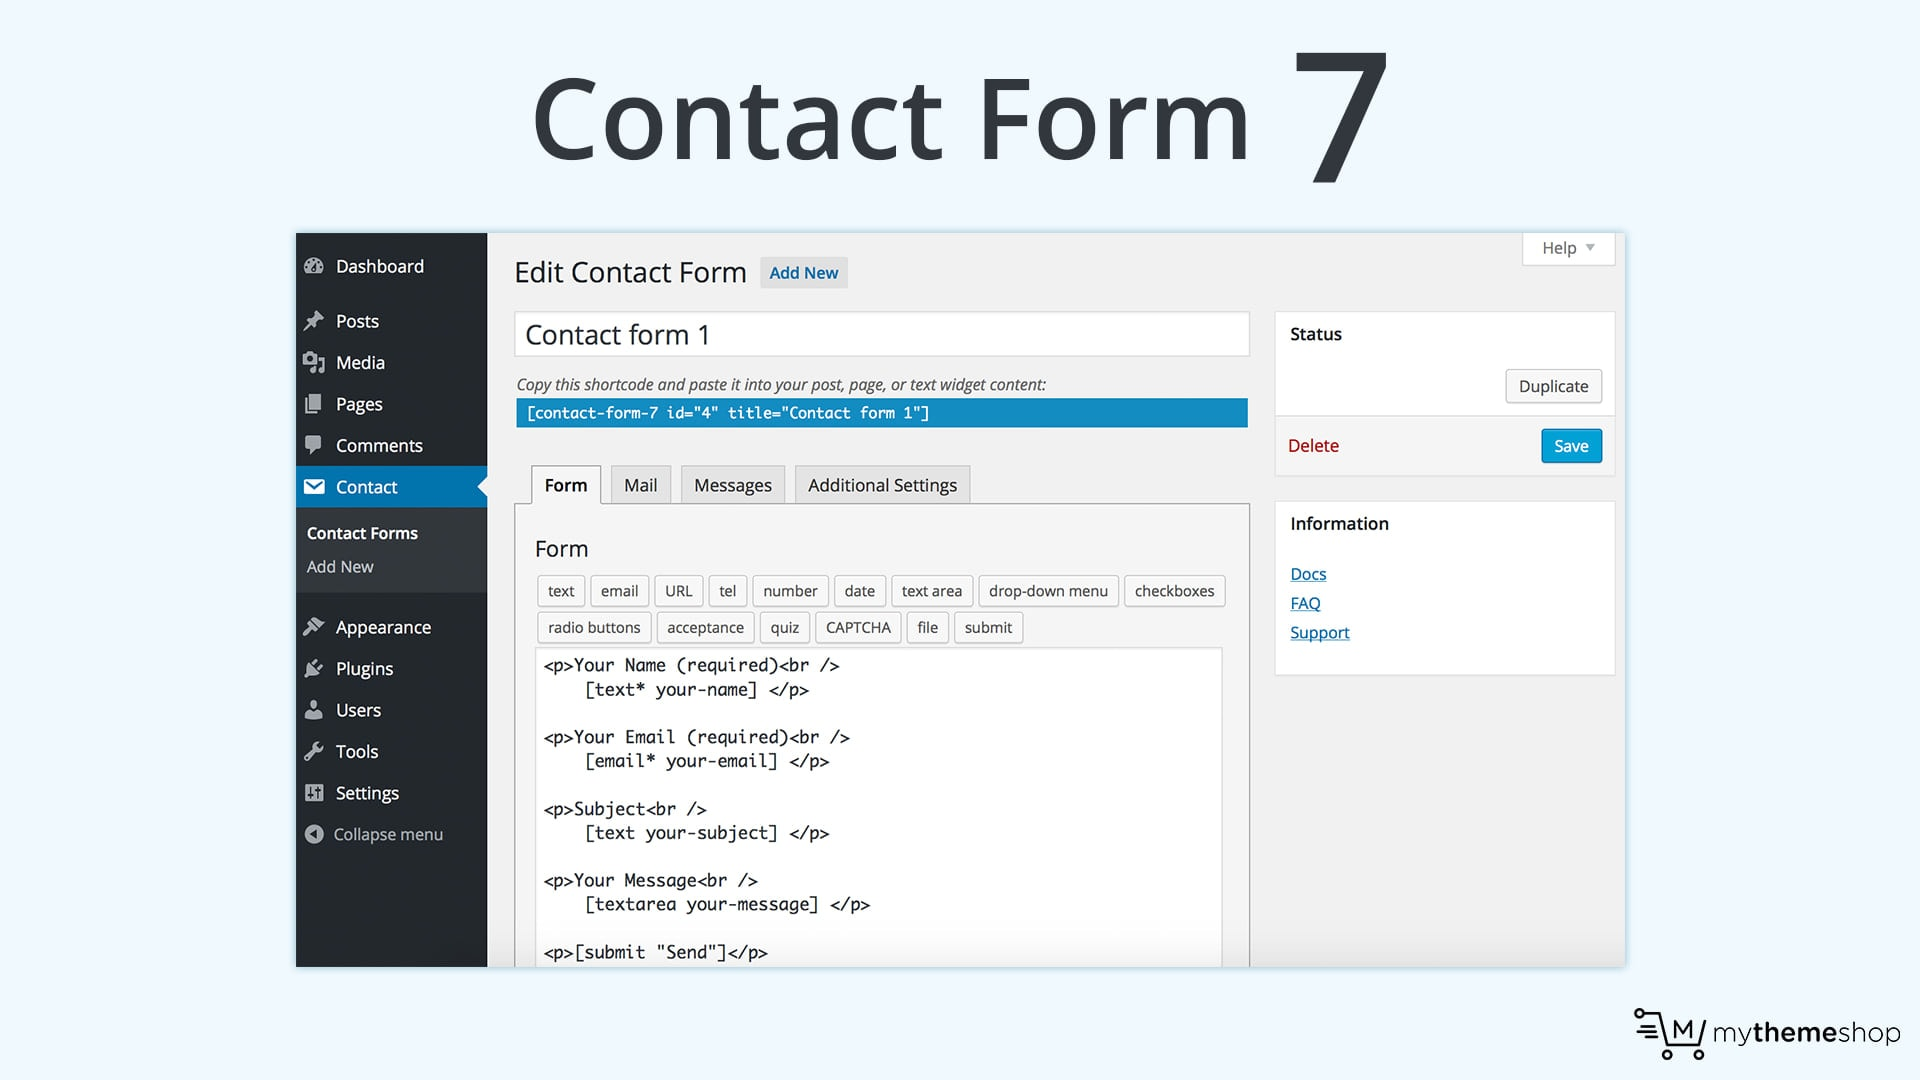 4) Contact Form 7